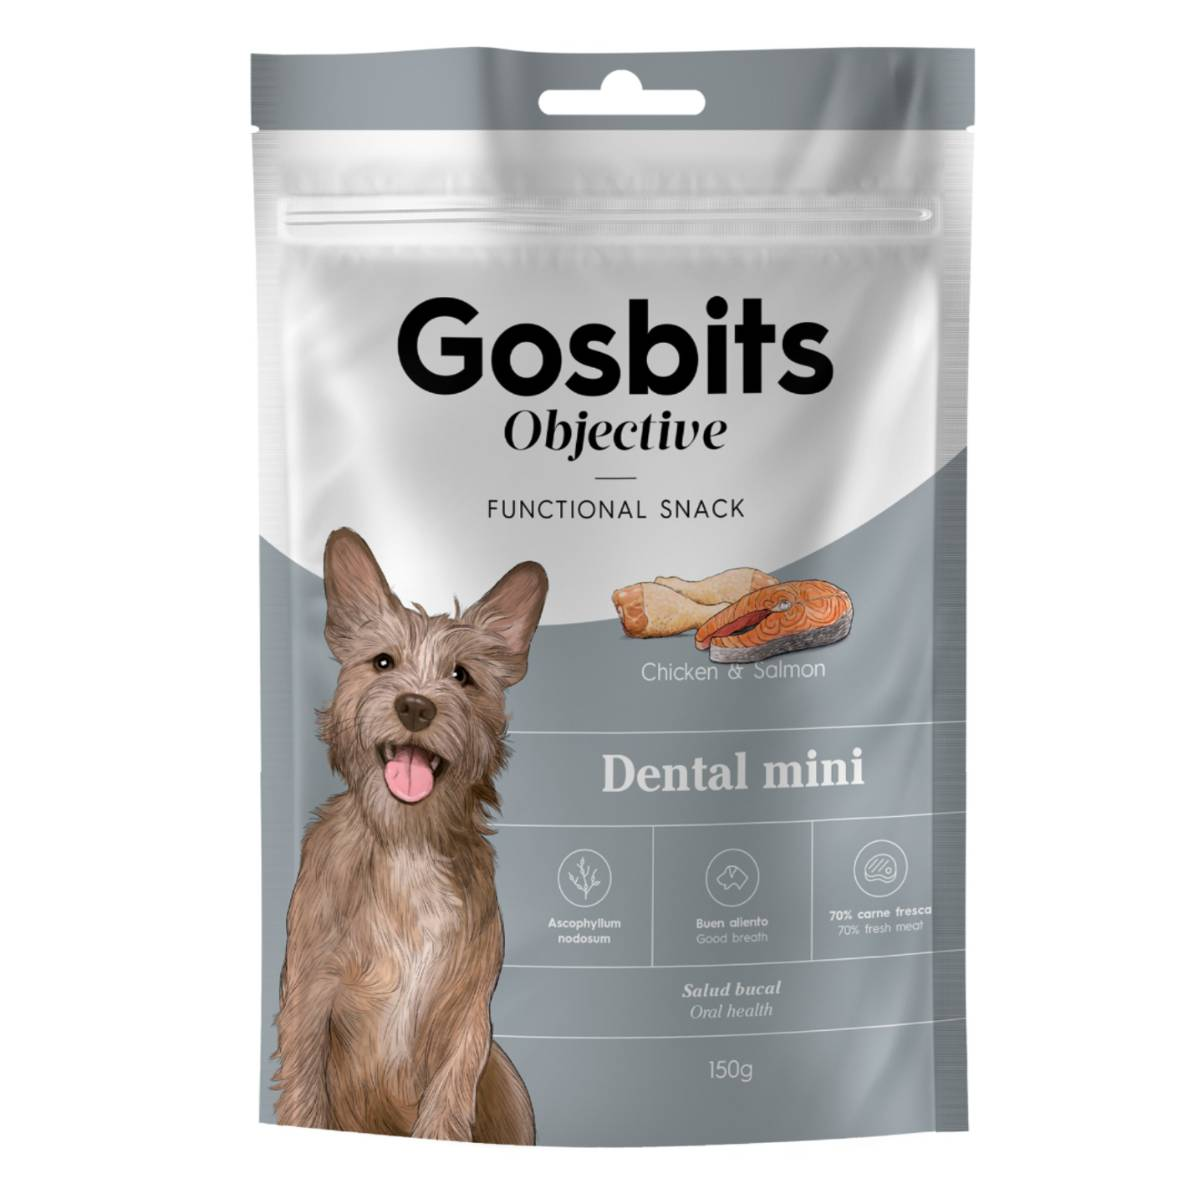 Gosbits Dental mini